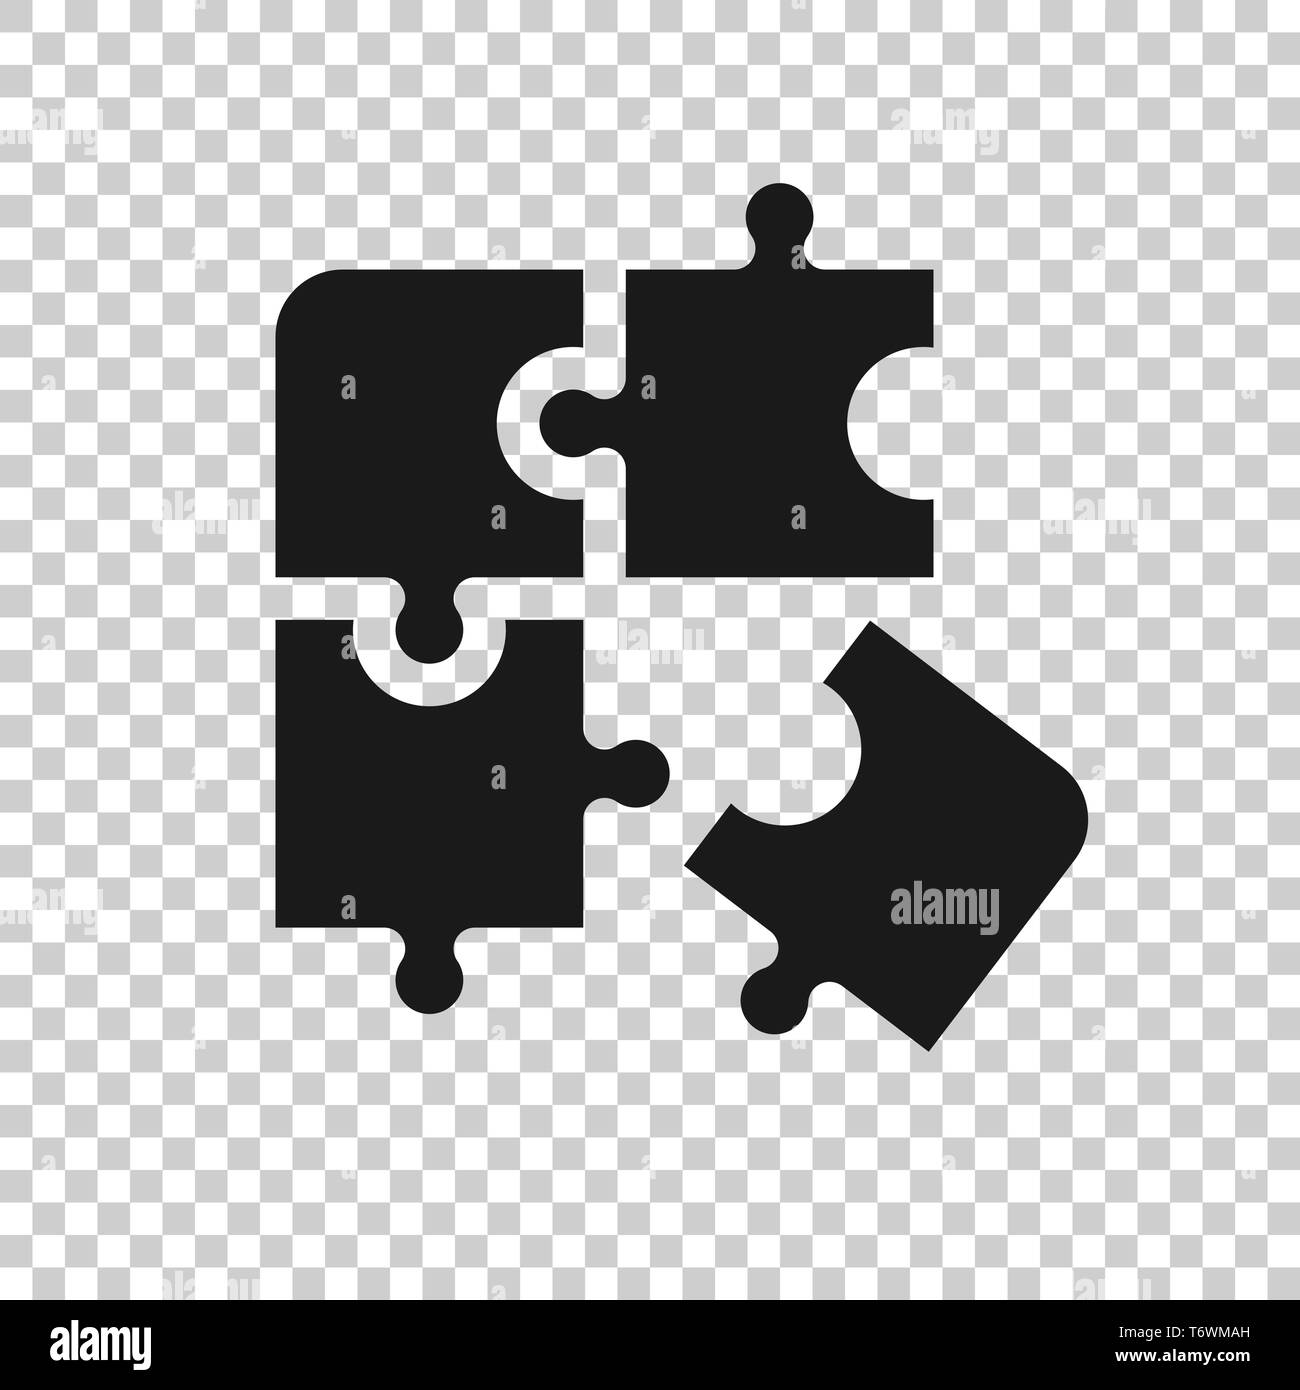 Puzzle compatible icon in transparent style. Jigsaw agreement vector illustration on isolated background. Cooperation solution business concept. - Stock Image